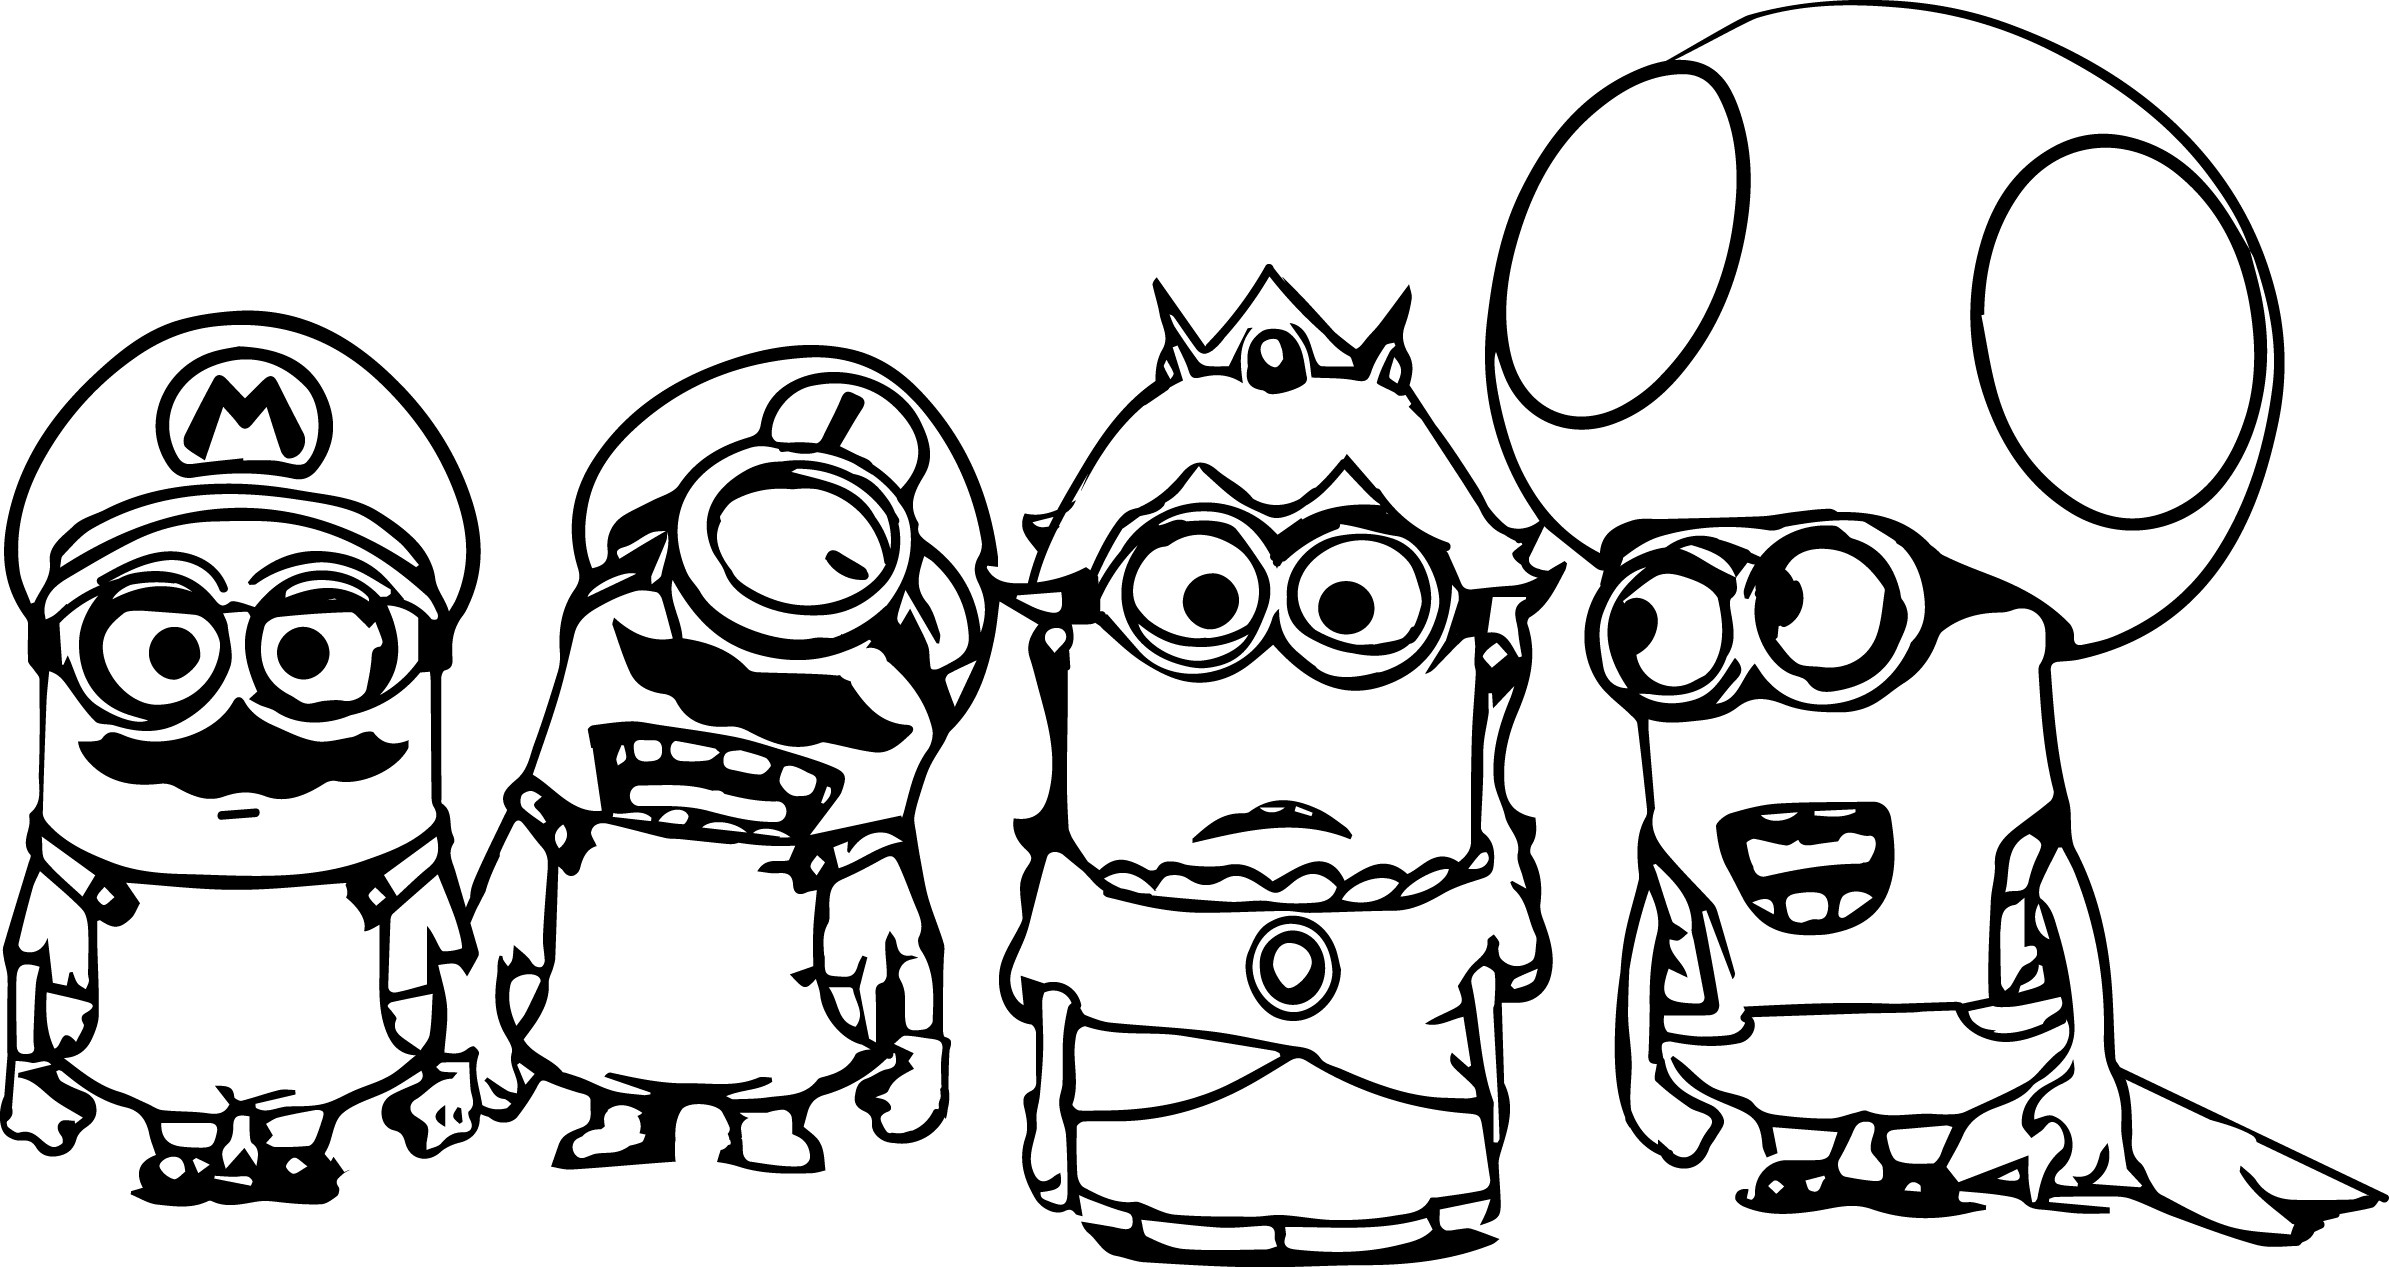 2389x1267 Coloring Pages Printable Minions Funny Coloring Page For Adult